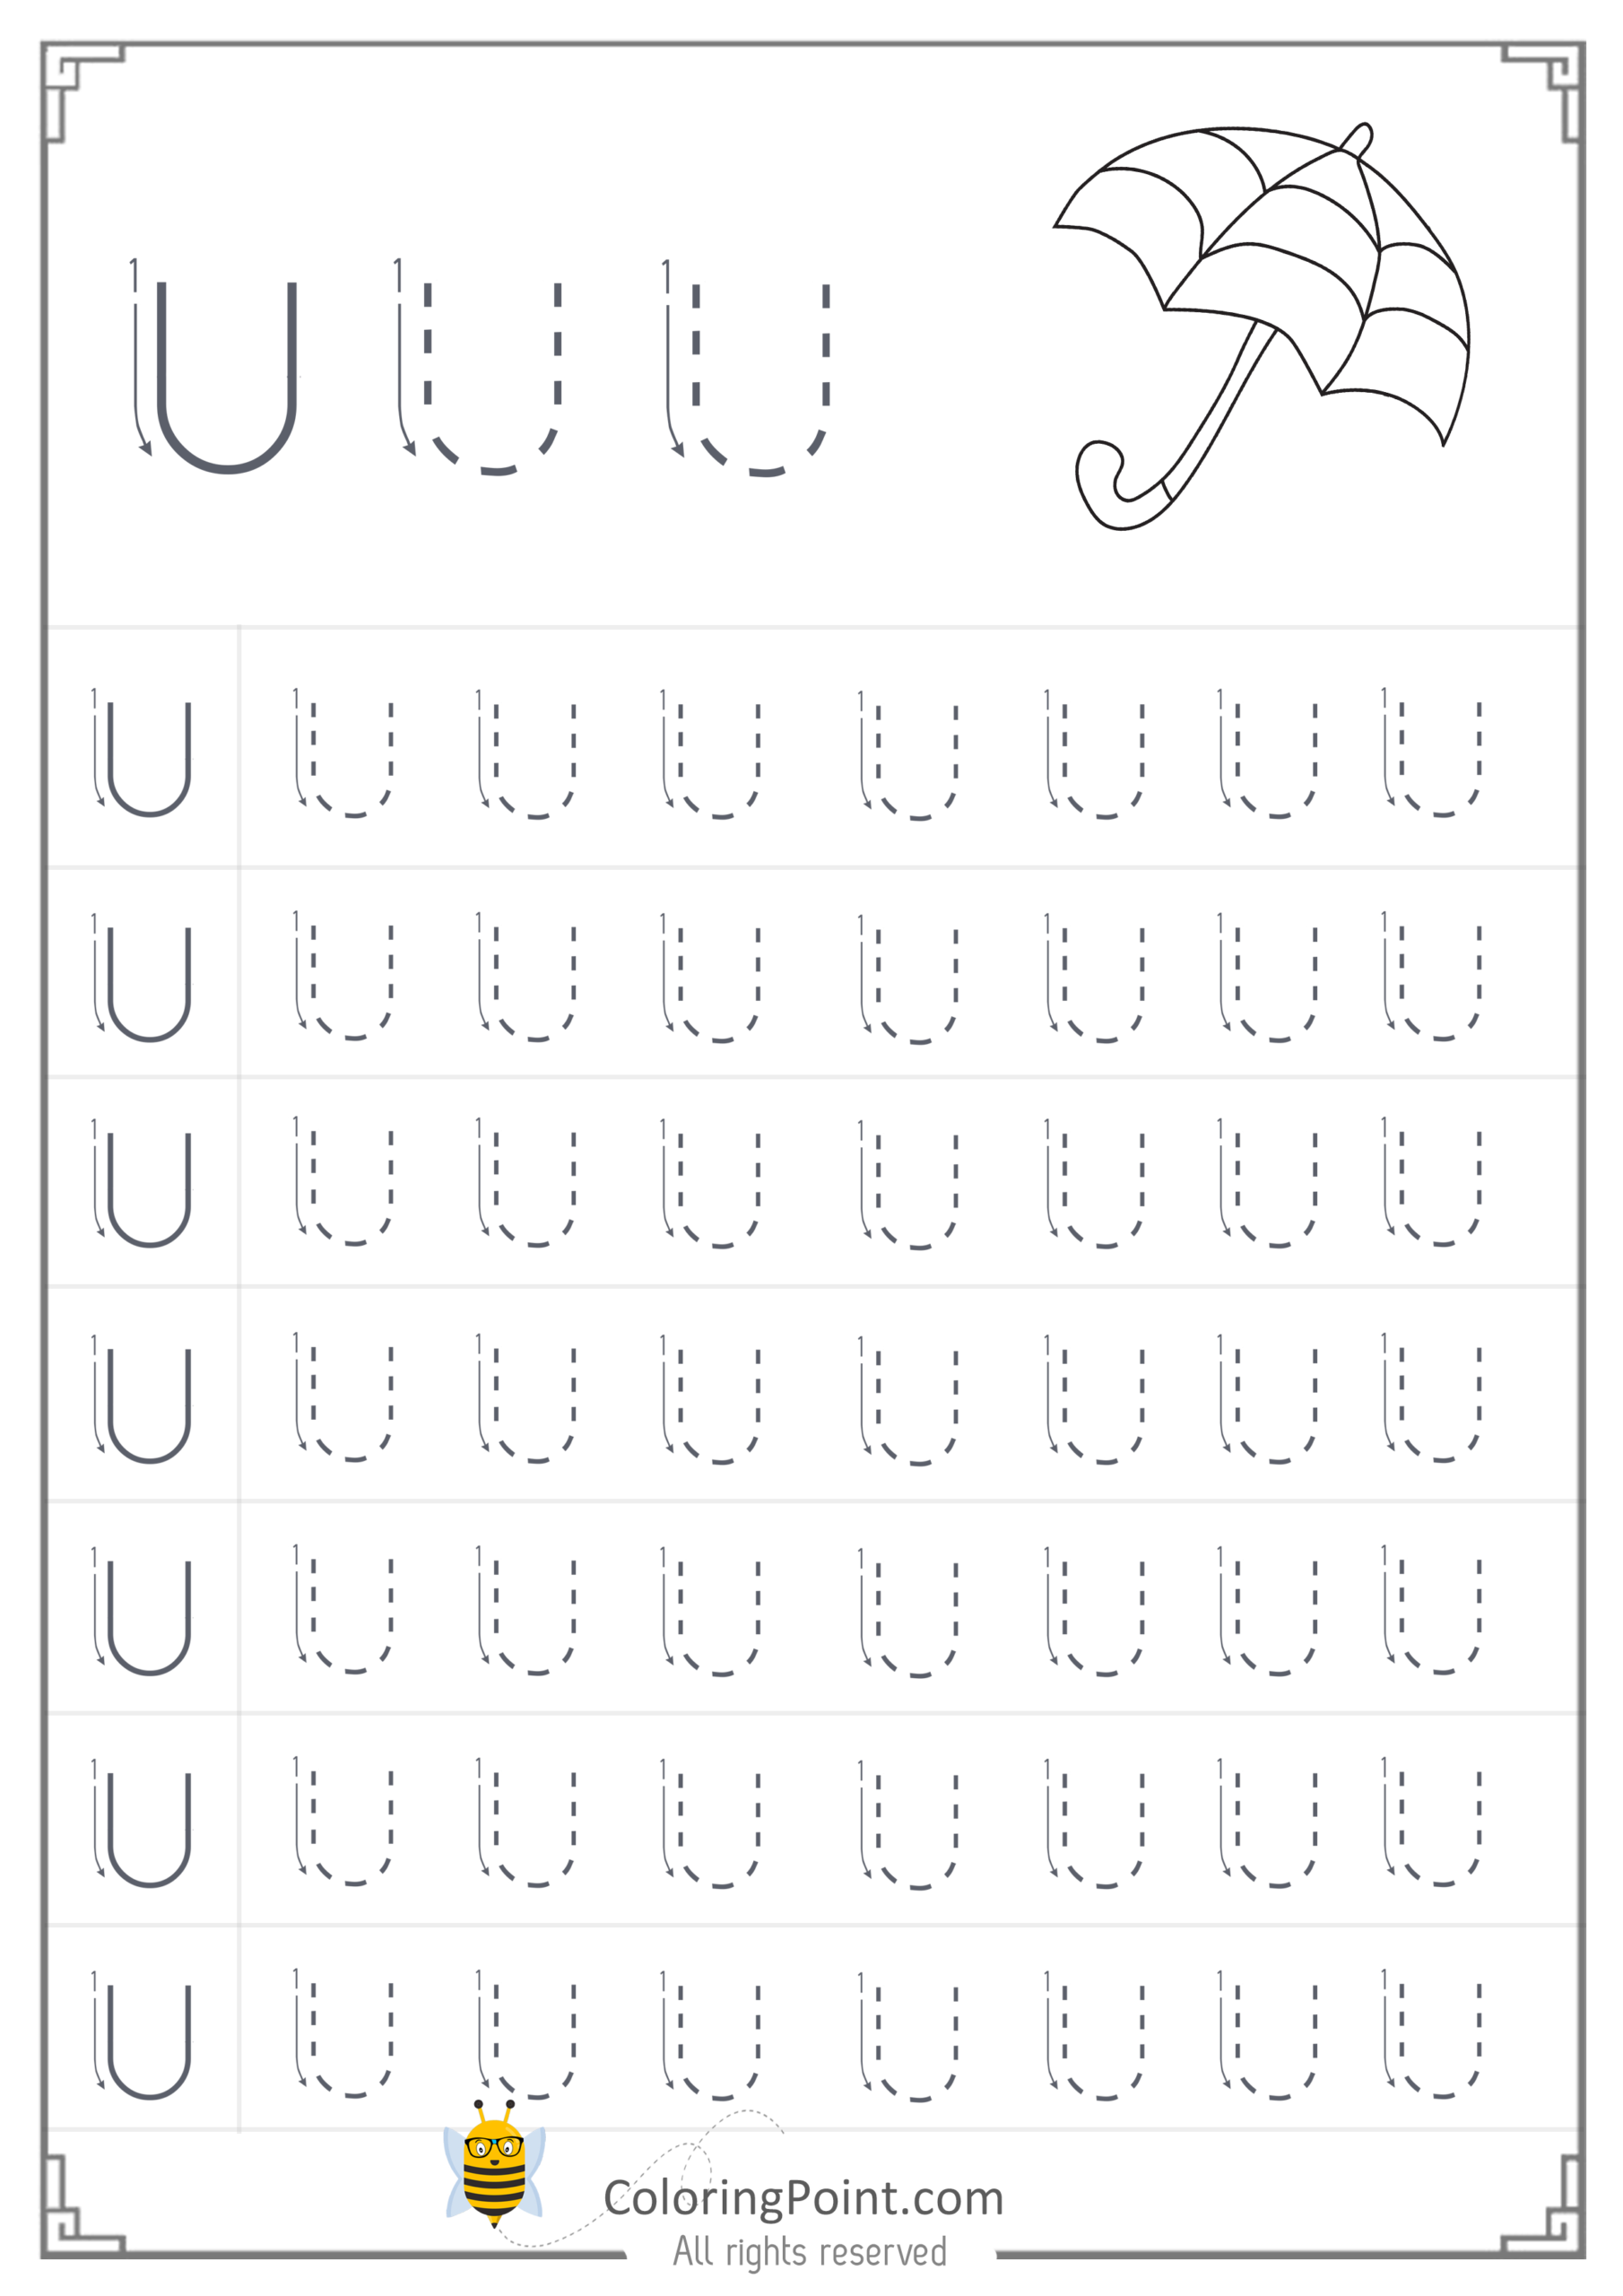 Free Printable Tracing Letter U Worksheets Preschool pertaining to Letter U Tracing Page